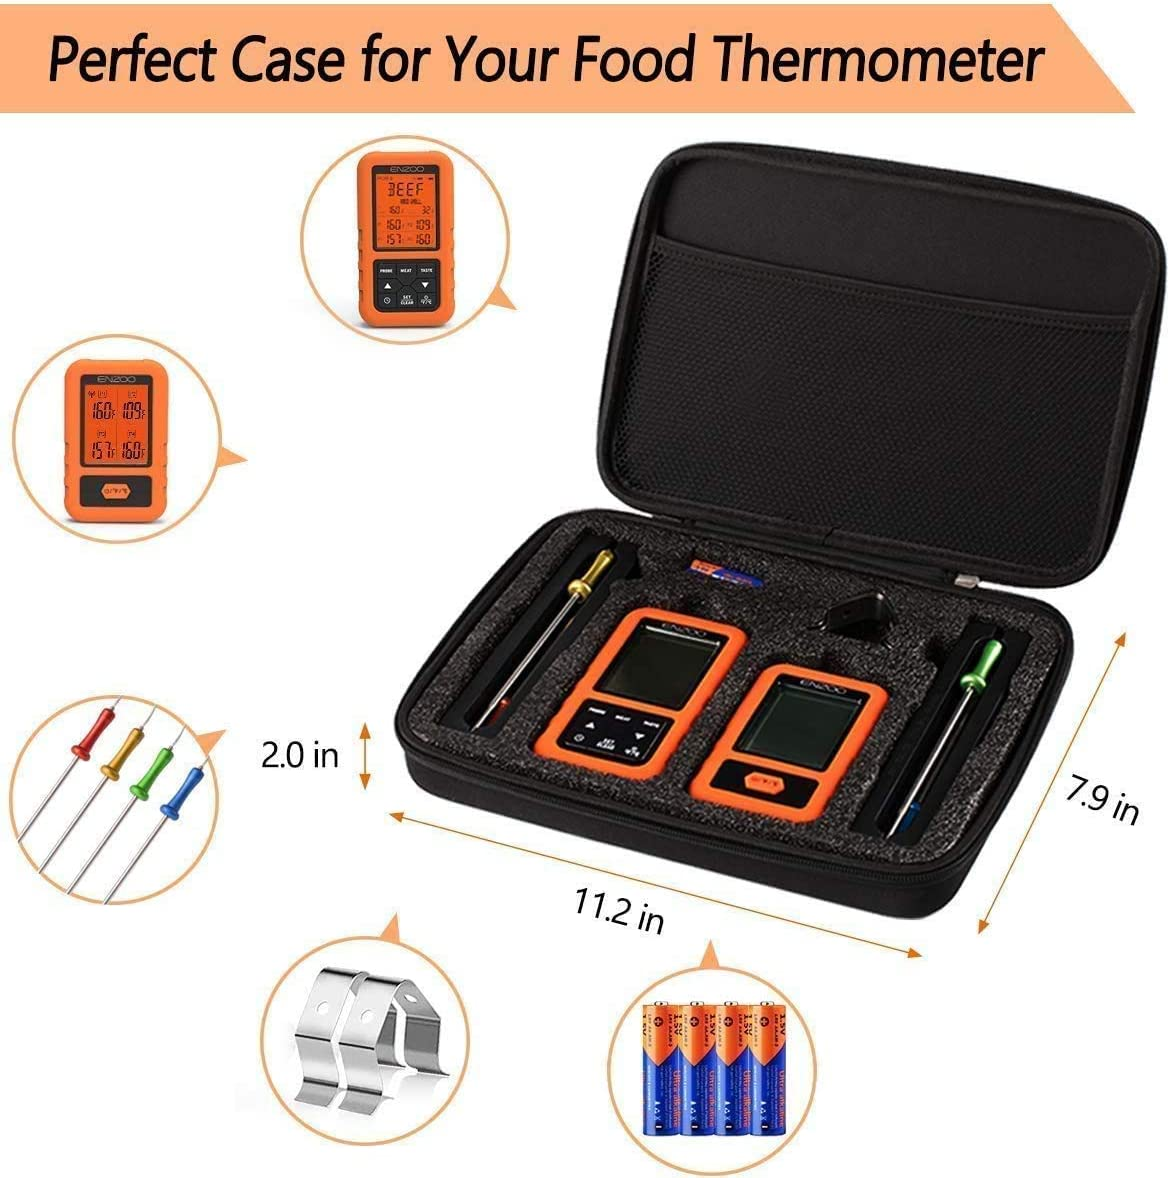 ENZOO Wireless Meat Thermometer for Grilling, Ultra Accurate & Fast Digital Meat Thermometer for Smoking with 4 Probes, 500FT 178° WideView Meat Thermometer for Smoker, BBQ, Carring Case Included: Industrial & Scientific